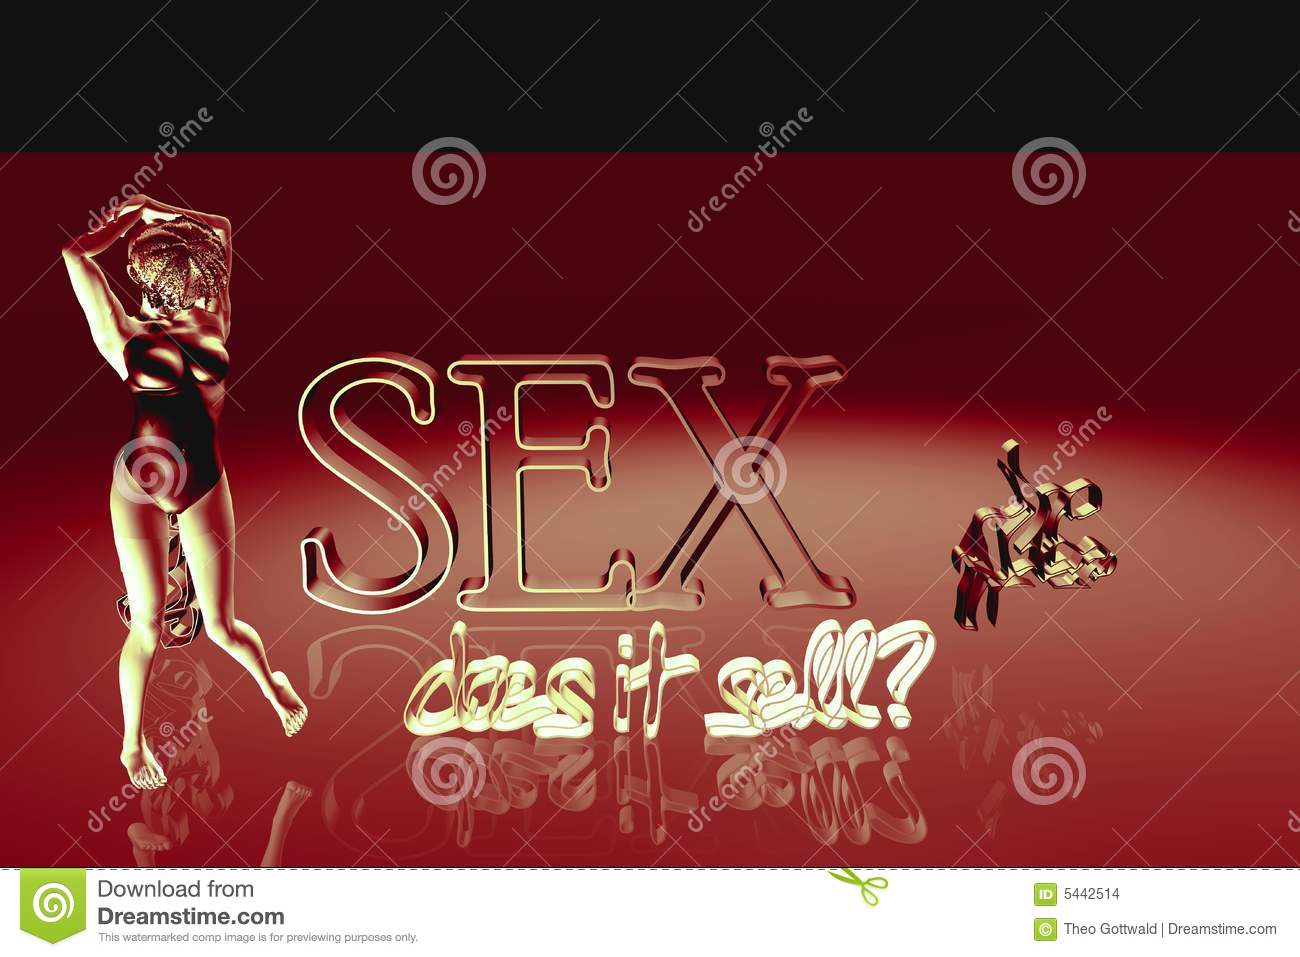 does sex sell Hey, i know it sounds like a stupid questionand it probably isbut i really dont get it, why does sex sell so well i mean i get that a hot guy or girl on the cover of a magazine would attract you to buy iti do get it when its like that, but the hot guy/girl actually has somethin to do with the stories inside.